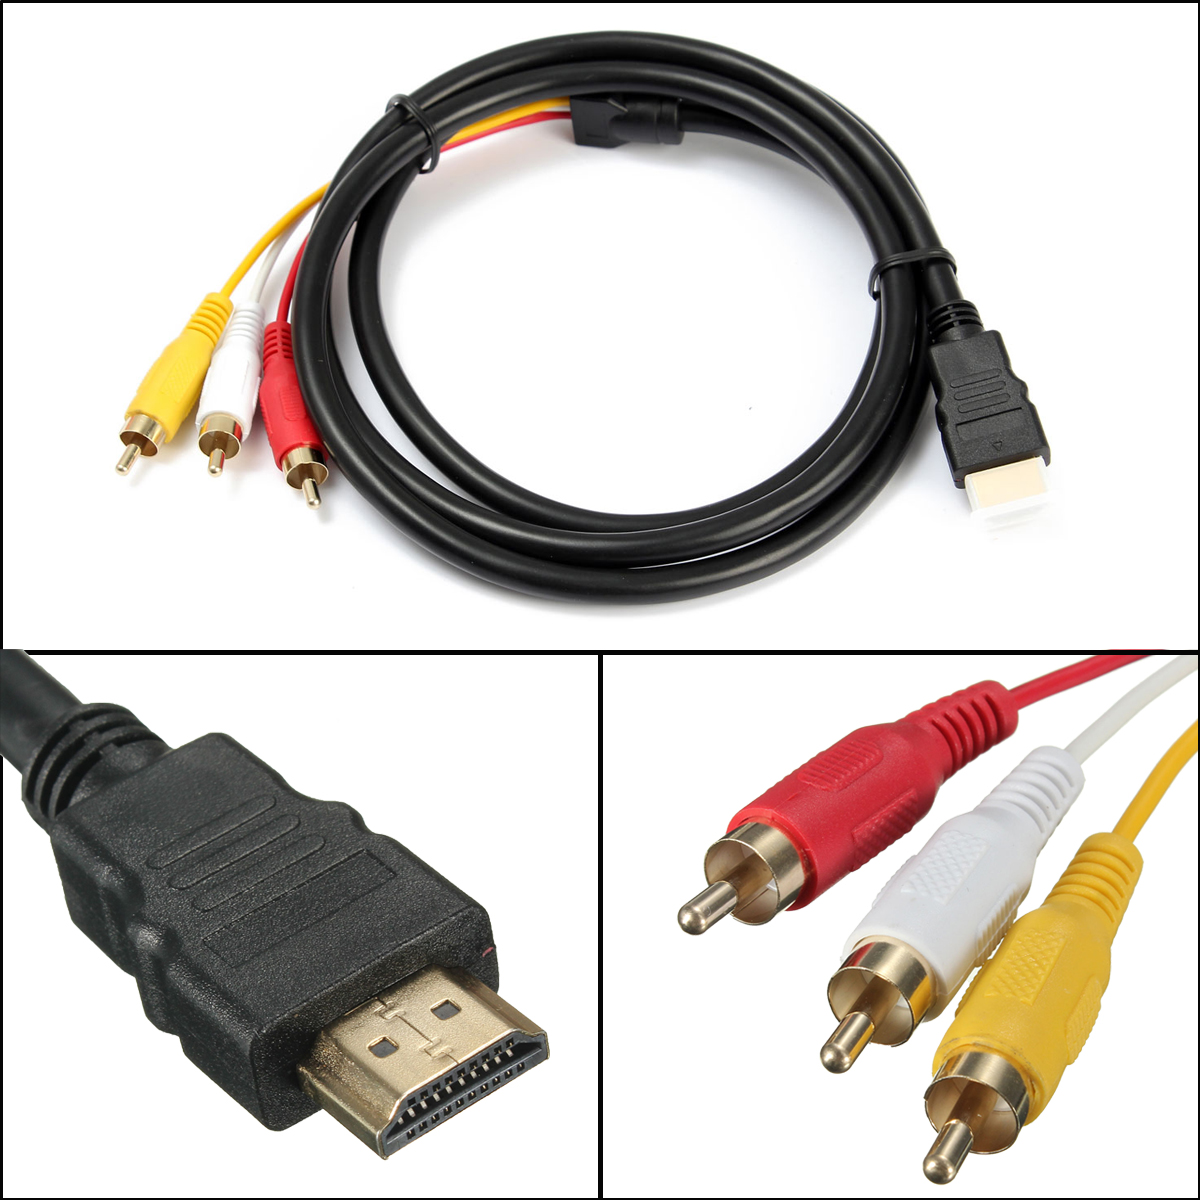 Black 1080P High Definition Multimedia Interface-Male To 3 RCA Video Audio AV Cable Adapter For HDTV 5 Feet 1.5m